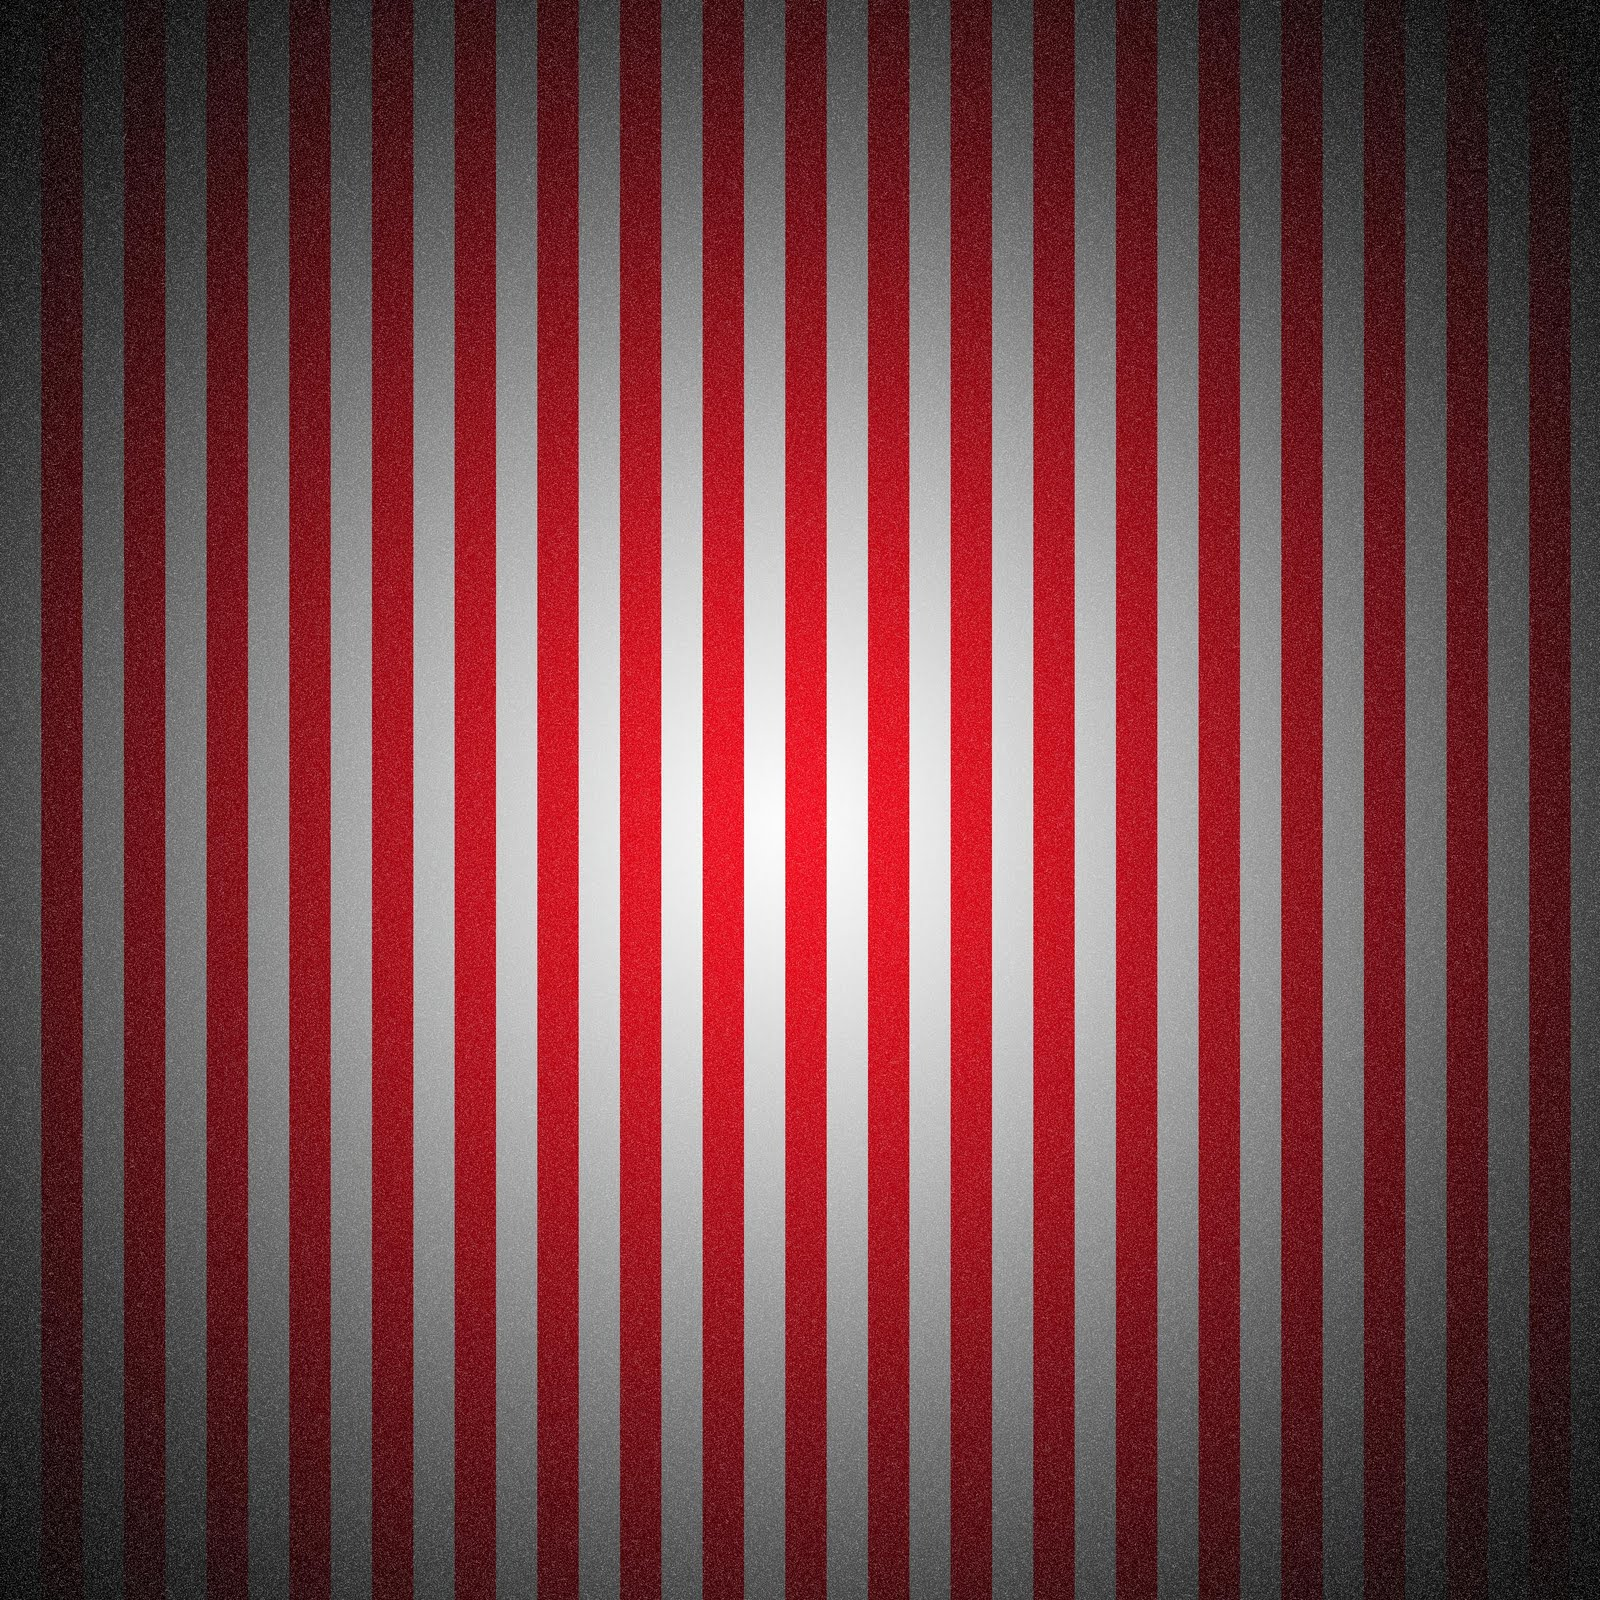 Red White Blue Stripes Background Red And White Stripes Click to